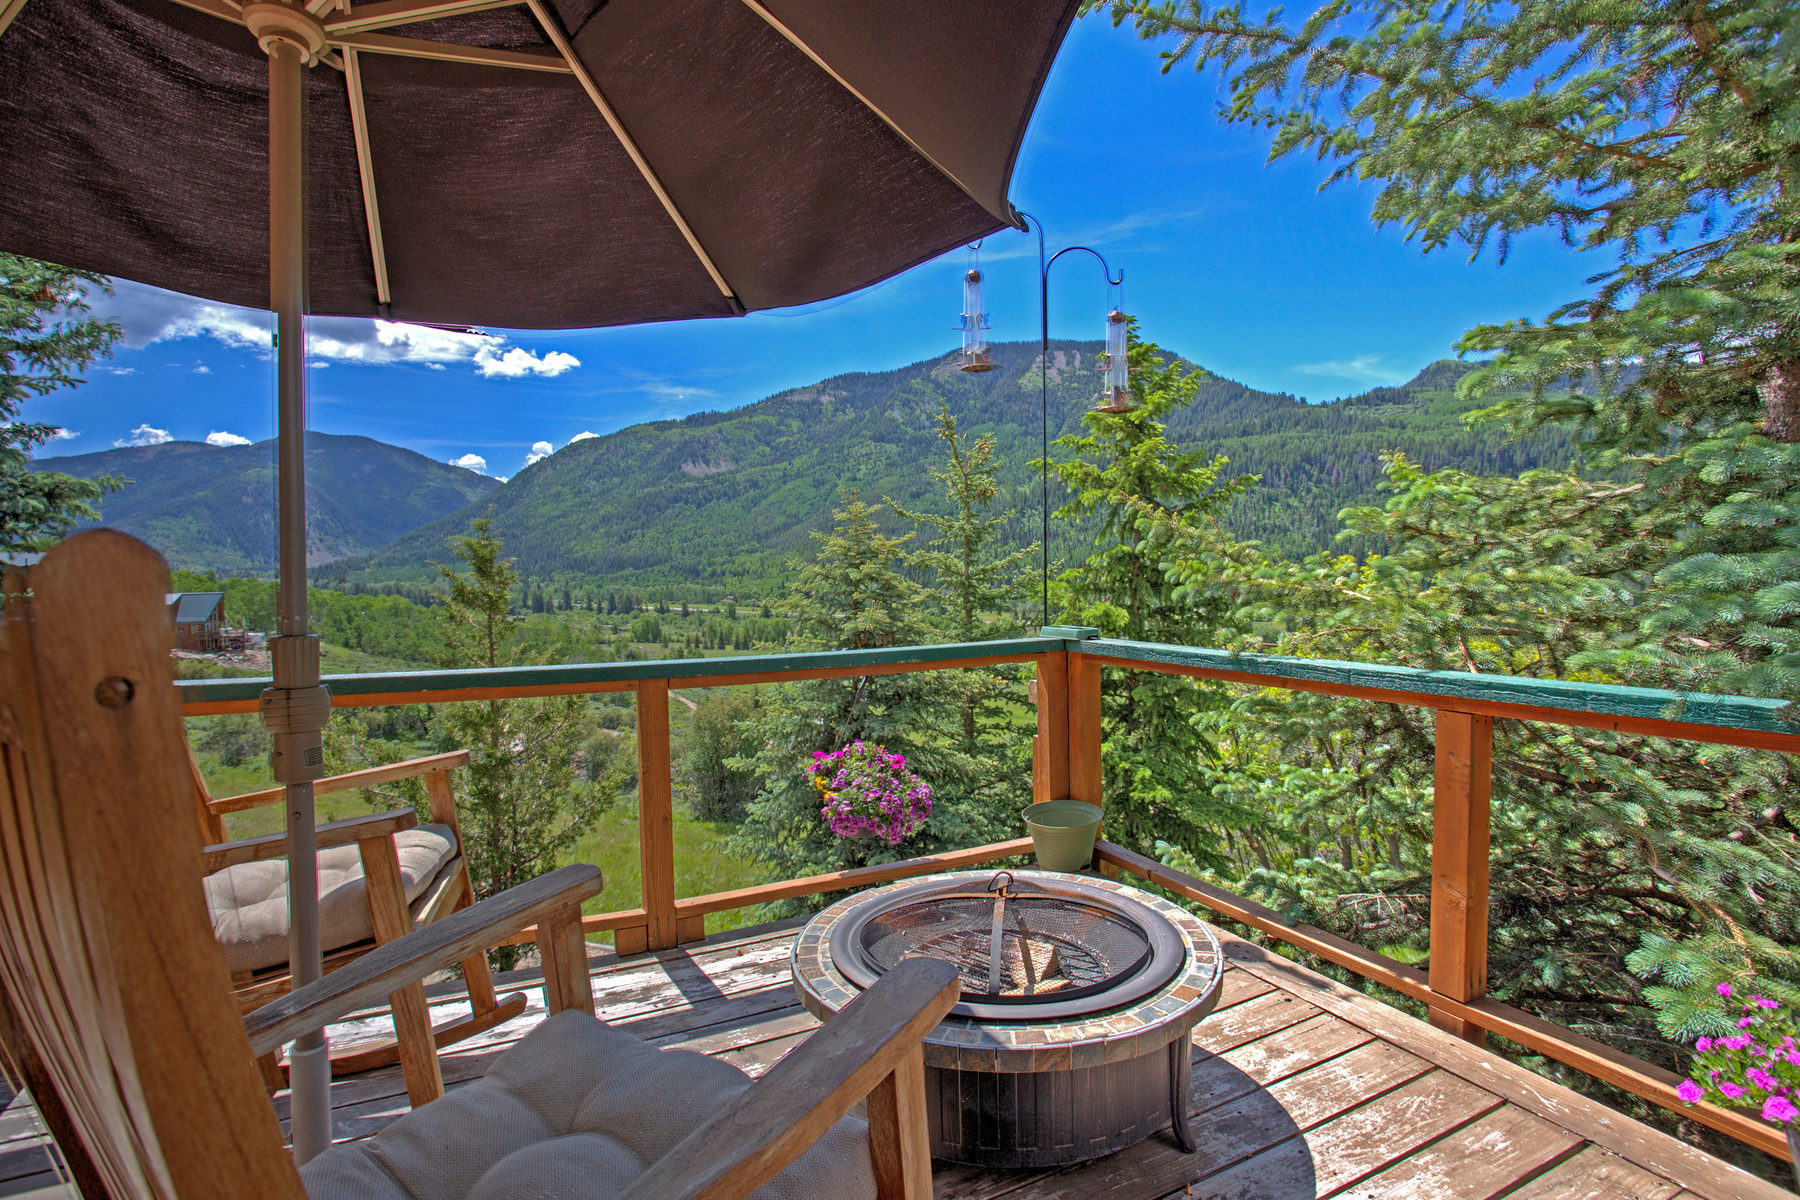 Property For Sale at Tranquil, Private Setting with Gorgeous Views